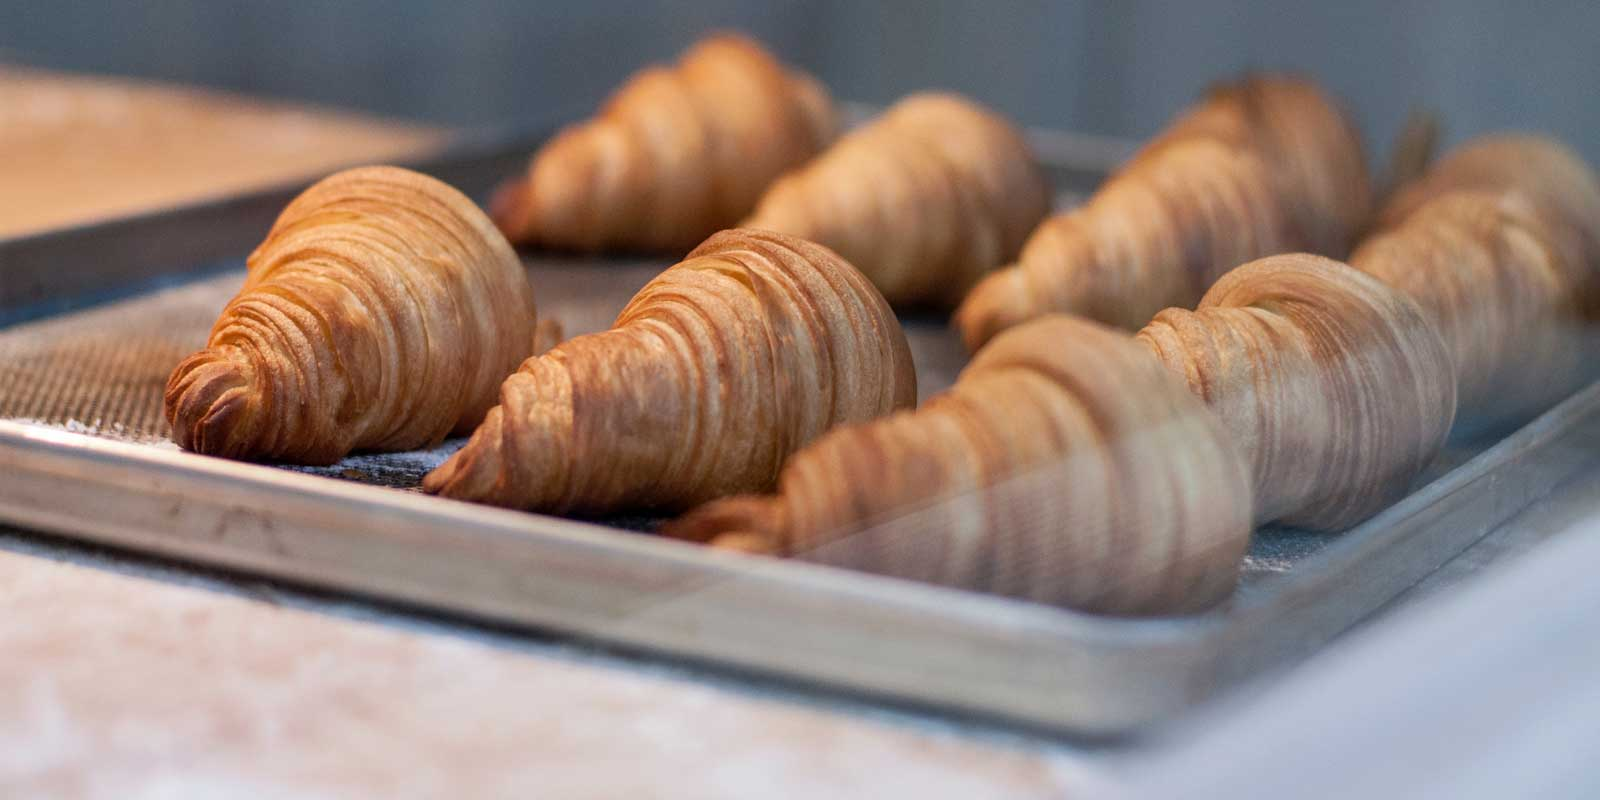 Closeup of freshly baked croissants on a baking tray.